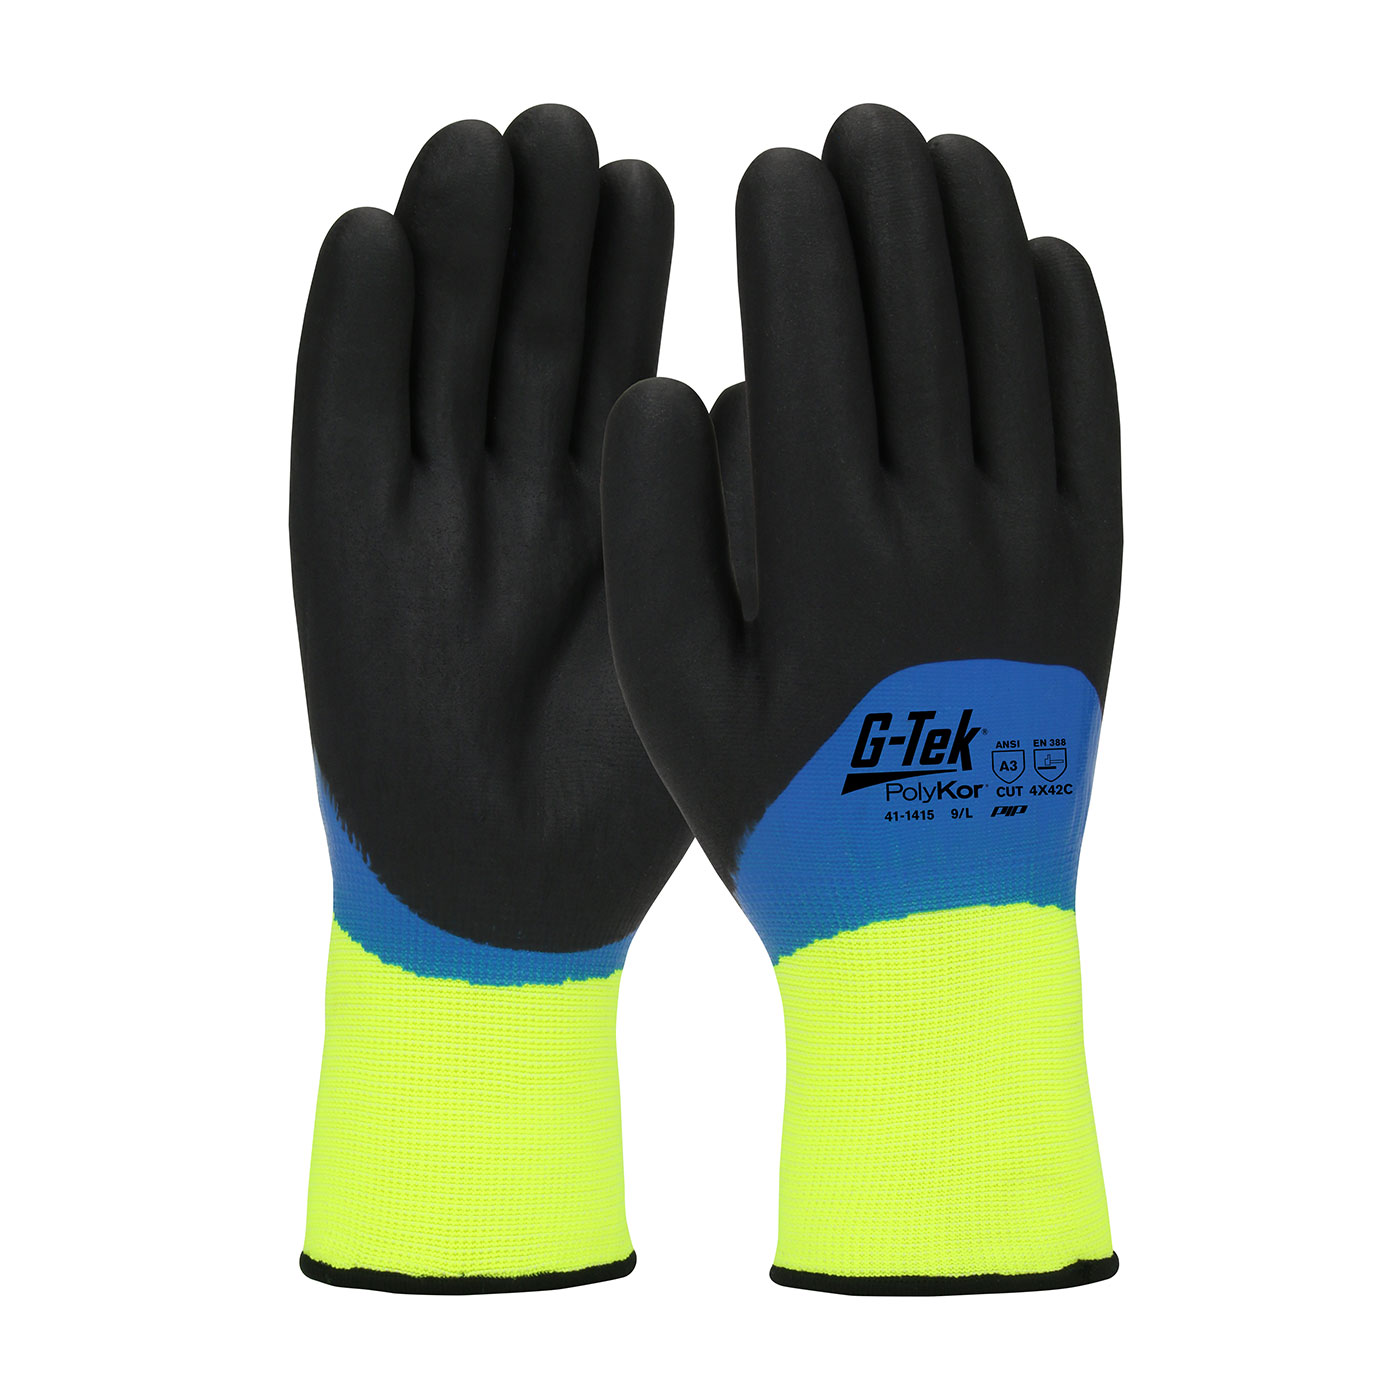 #41-1415 PIP® G-Tek® Hi-Vis Seamless Knit PolyKor Glove with Acrylic Liner and Double Dipped Nitrile Coated Foam Grip on Full Hand